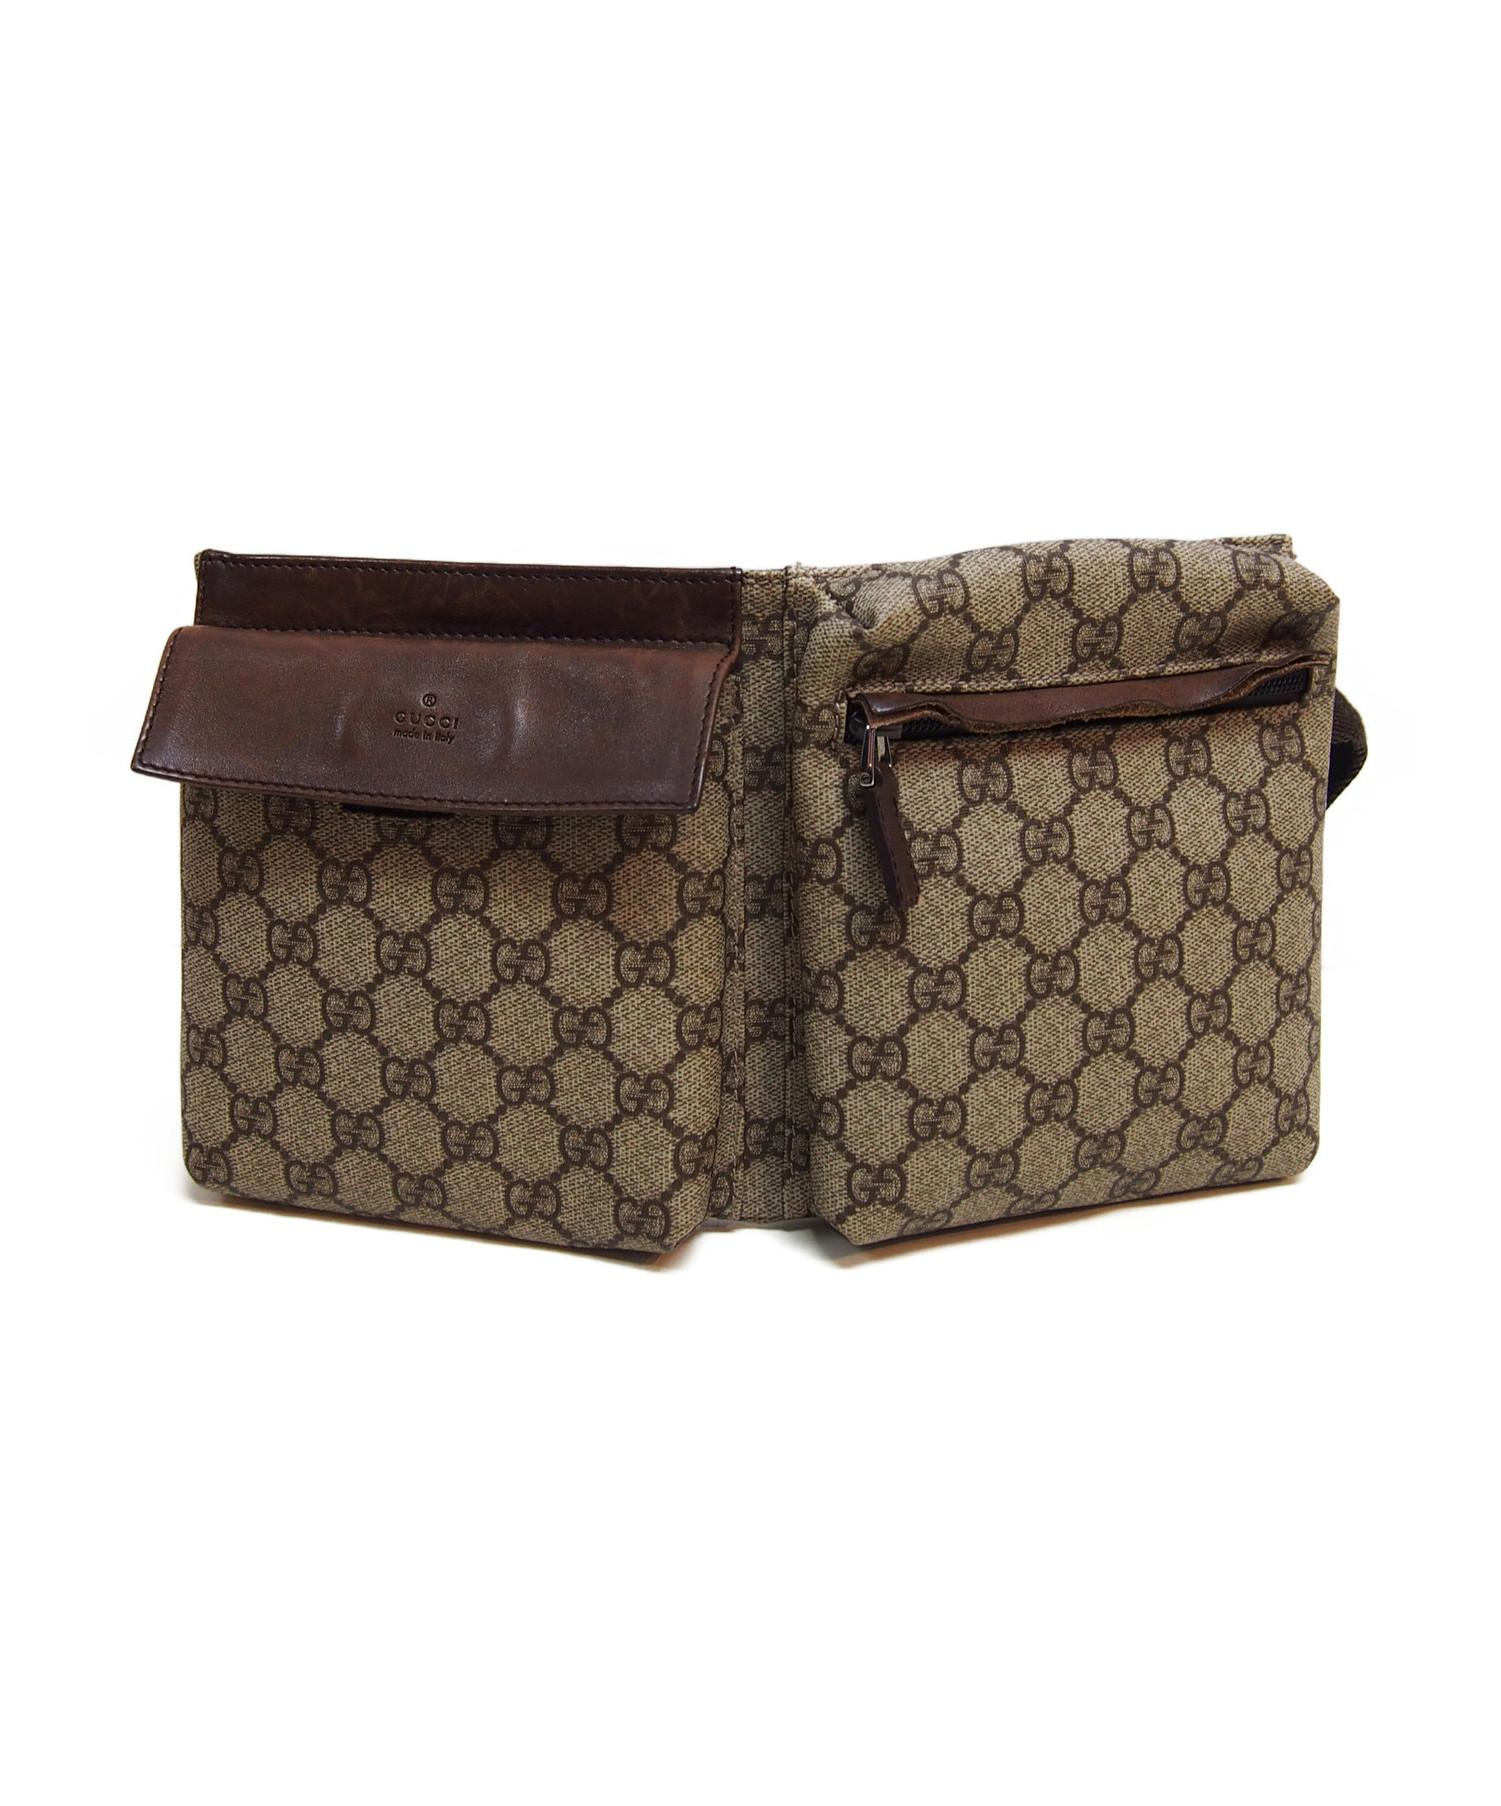 newest collection ba891 7c878 [中古]GUCCI(グッチ)のレディース バッグ ウエストポーチ